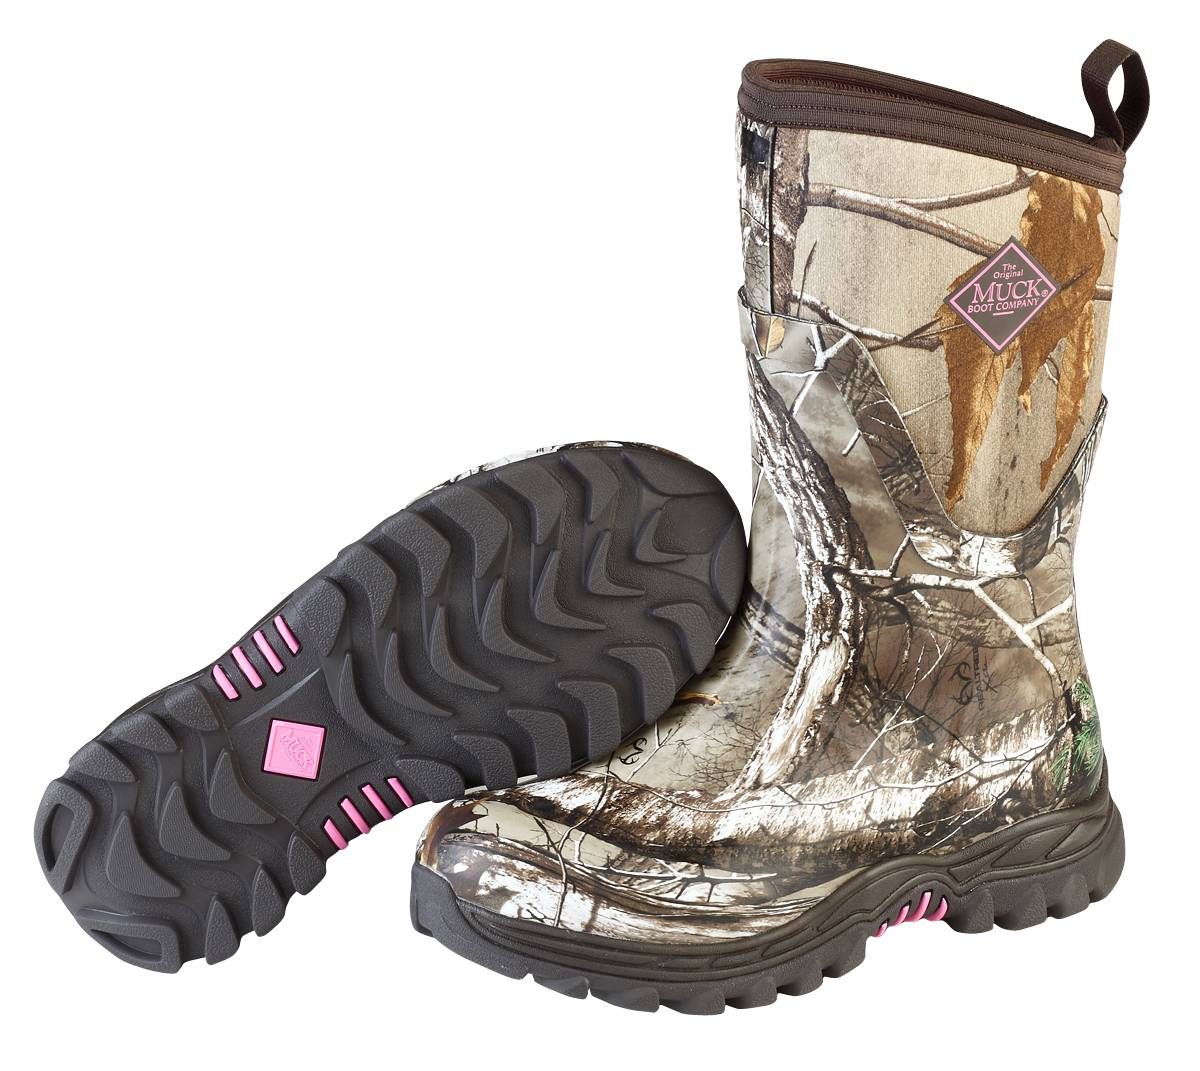 Muck Boots Arctic Hunter Mid Boots - Ladies Bark Realtree Xtra Pink